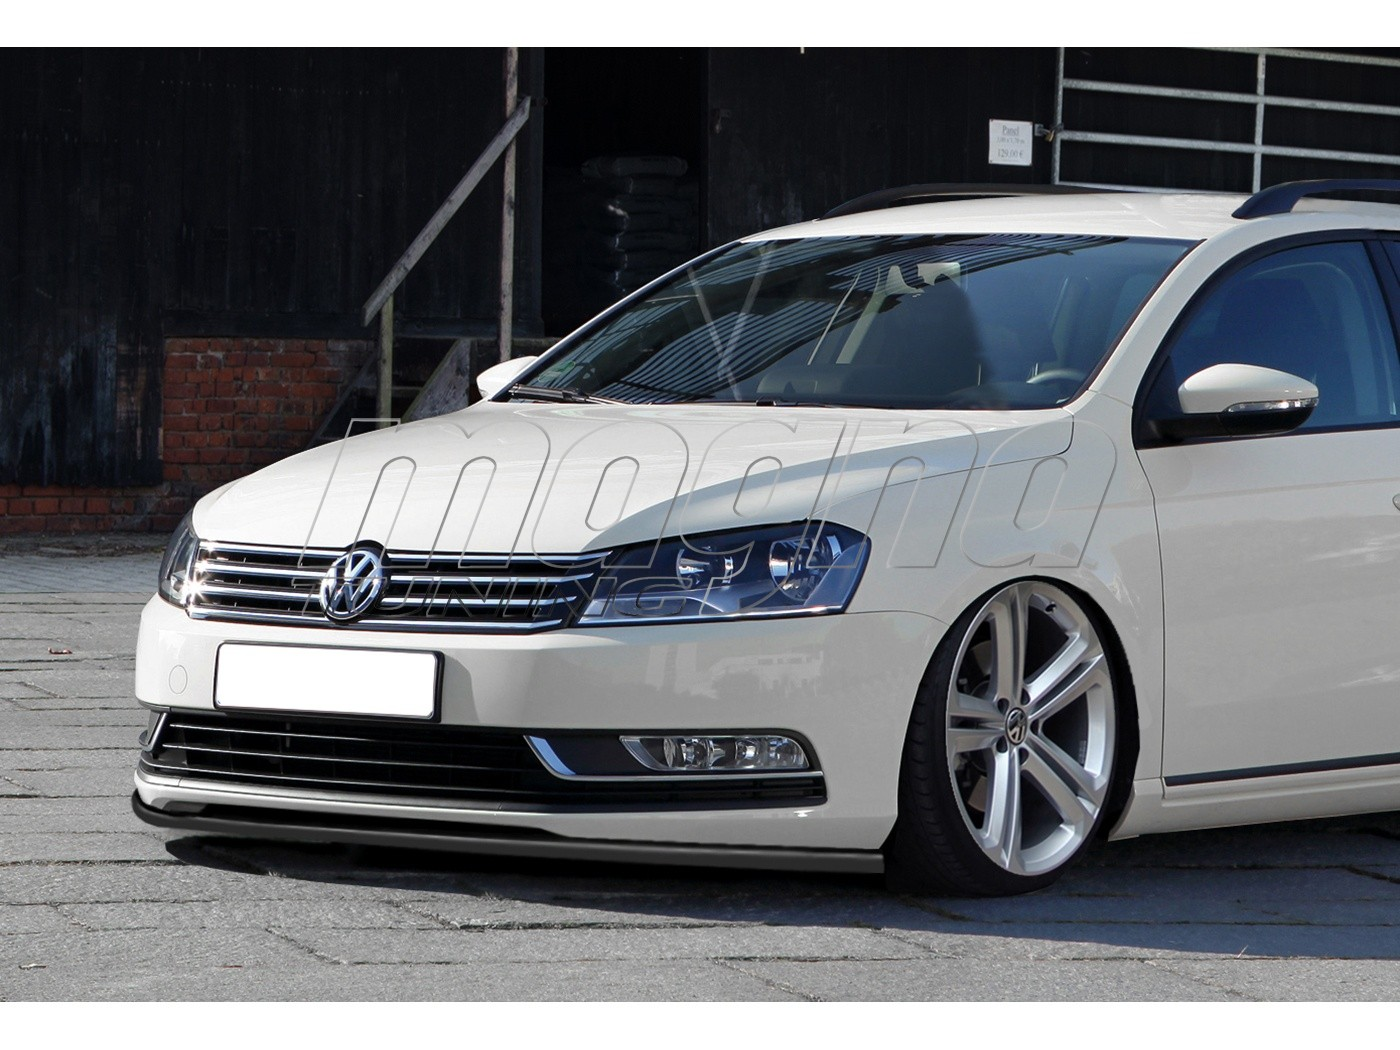 vw passat b7 3c intenso front bumper extension. Black Bedroom Furniture Sets. Home Design Ideas